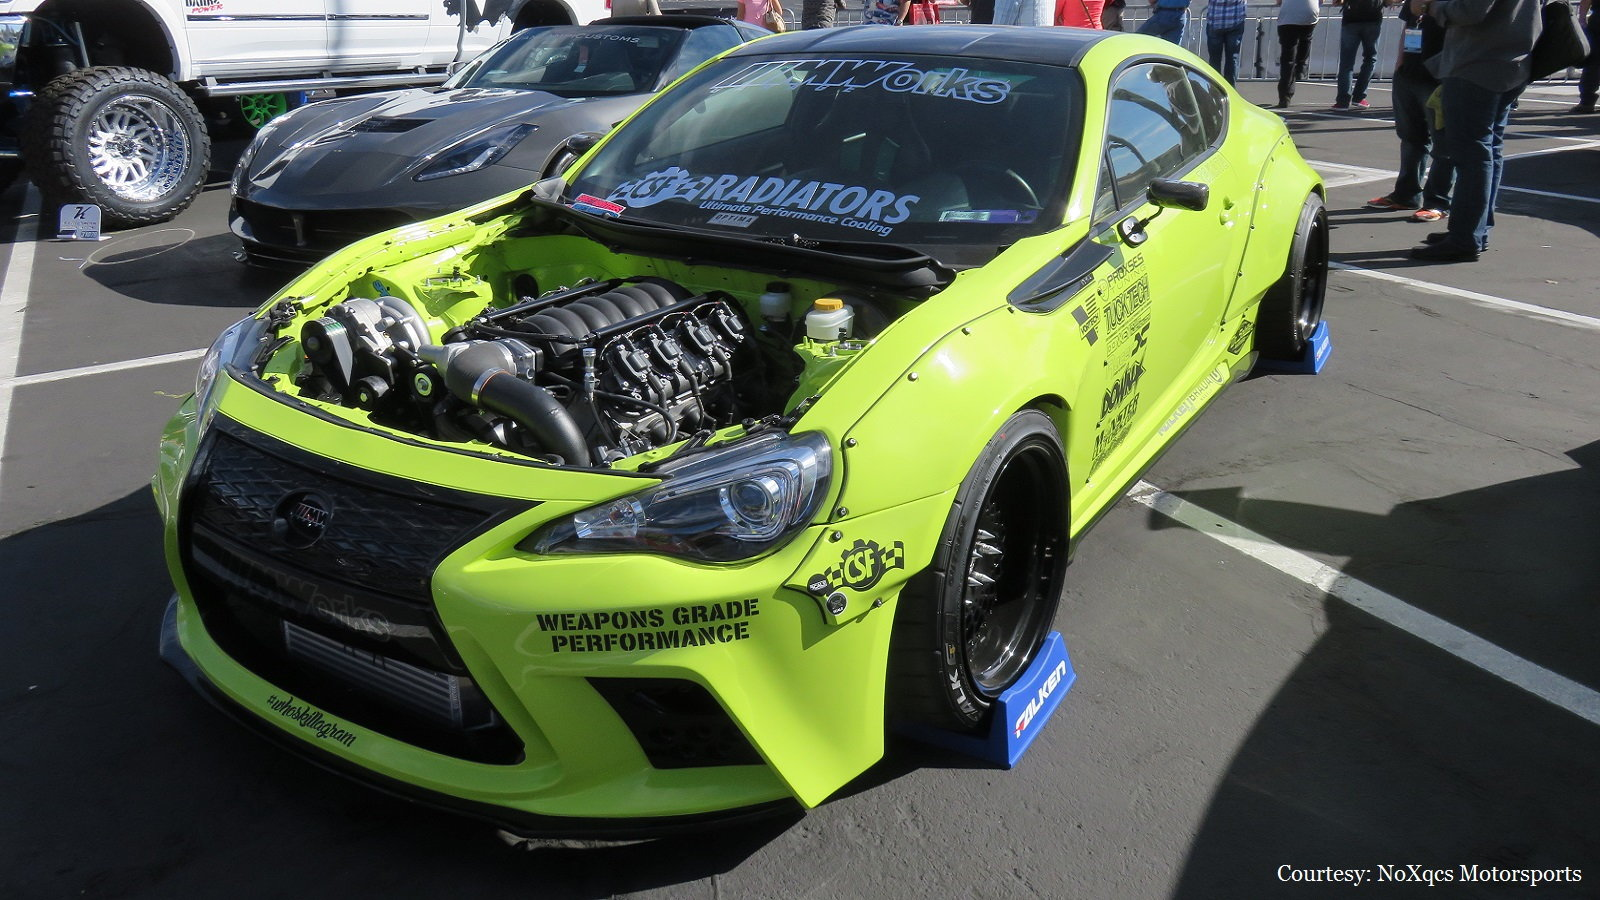 Weapons Grade Performance Scion FR-S